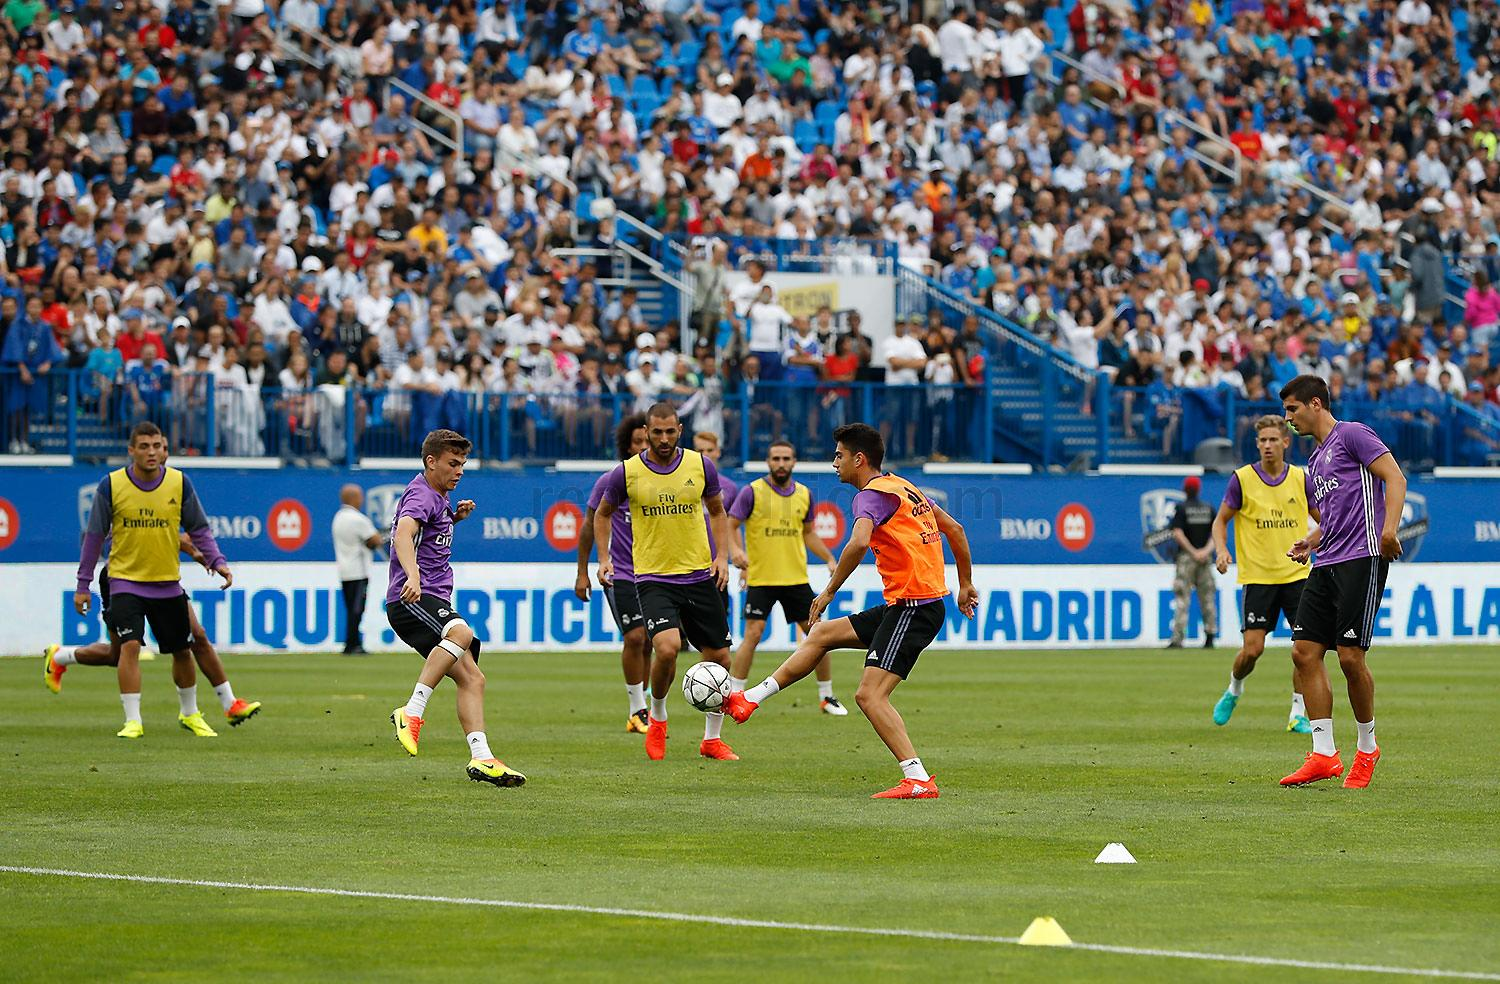 Real Madrid - Entrenamiento del Real Madrid en Montreal - 26-07-2016